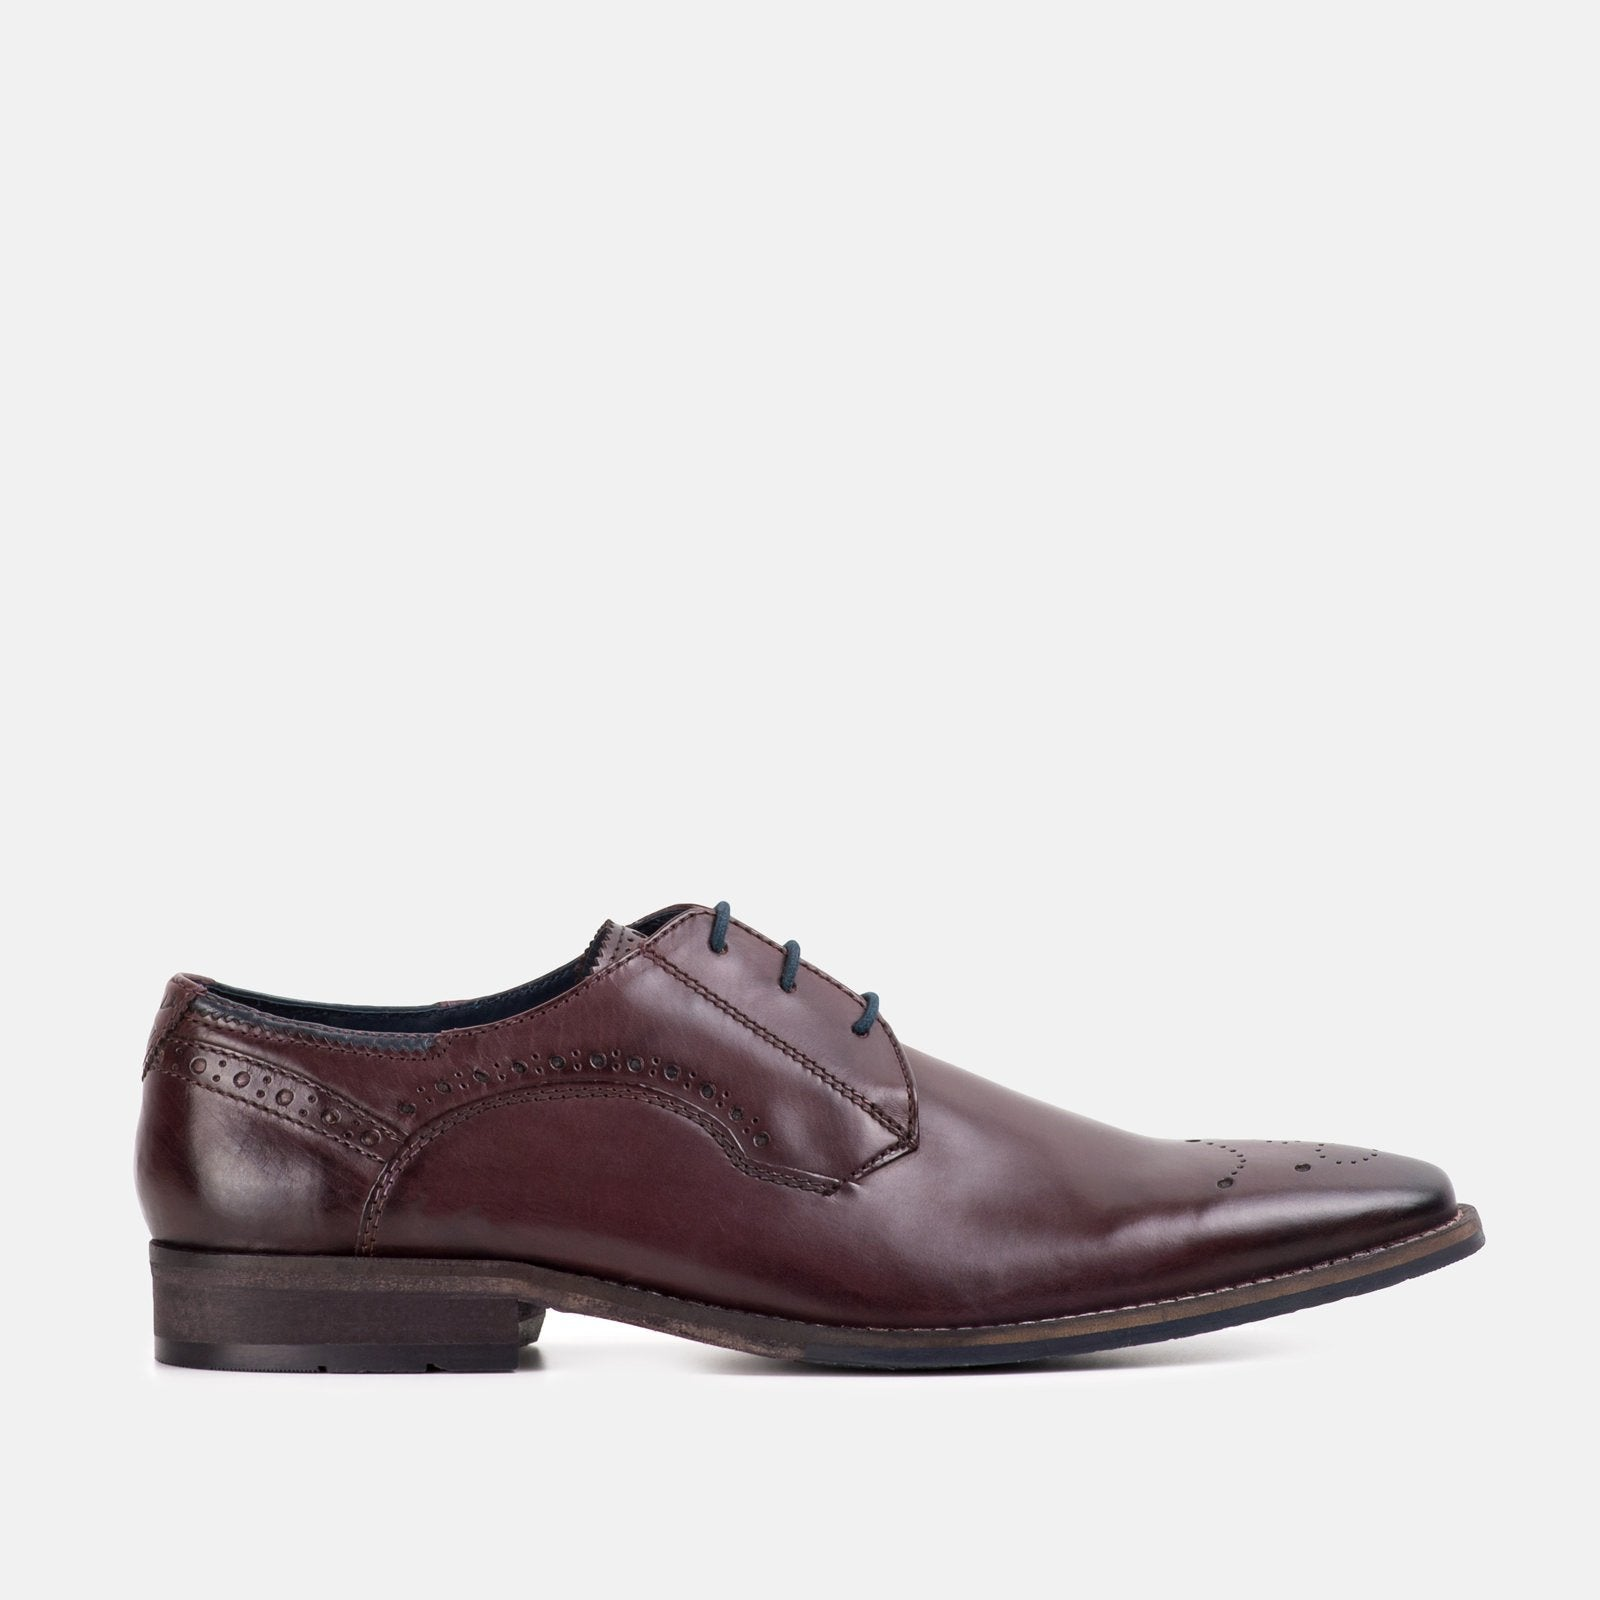 Goodwin Smith Footwear UK 6 / EURO 39 / US 7 / Aubergine / Leather HOLDEN AUBERGINE